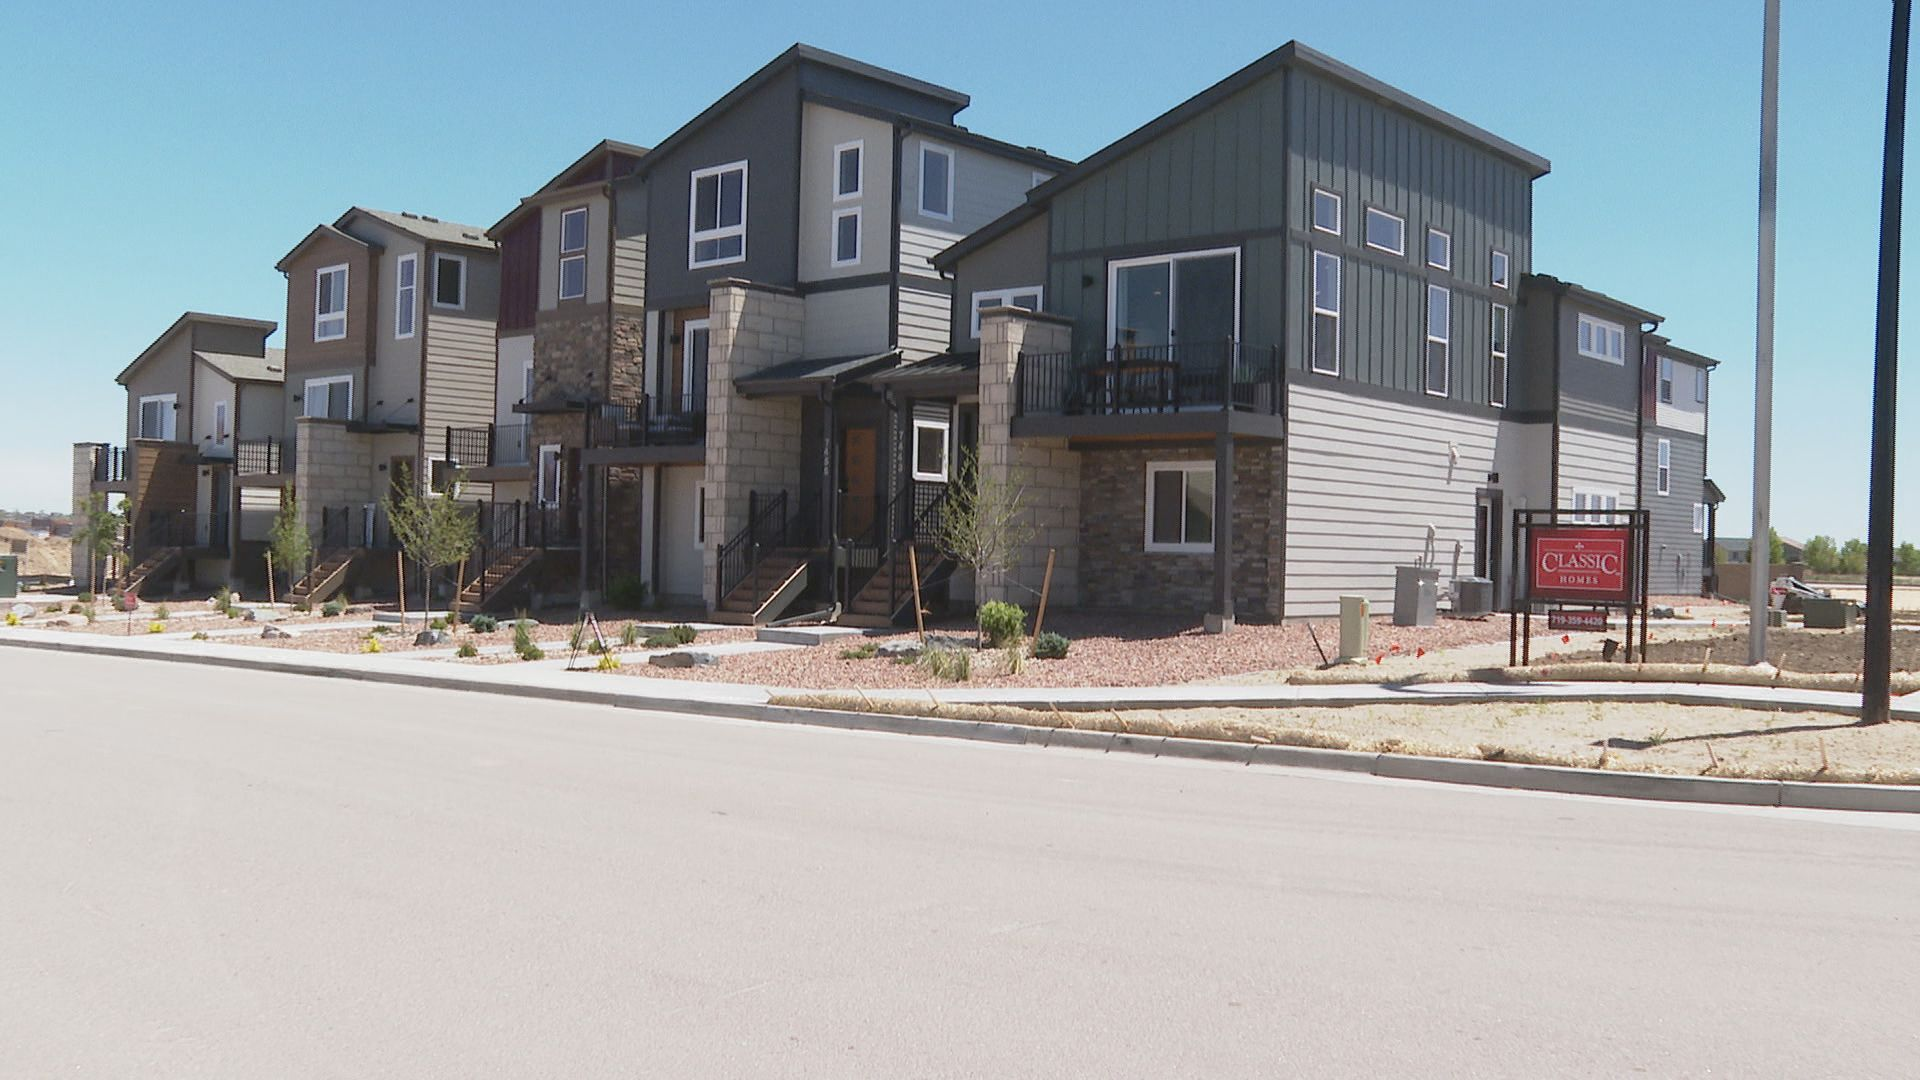 Detached Townhome Concept Gaining Traction In Colorado Springs Other Growing Markets